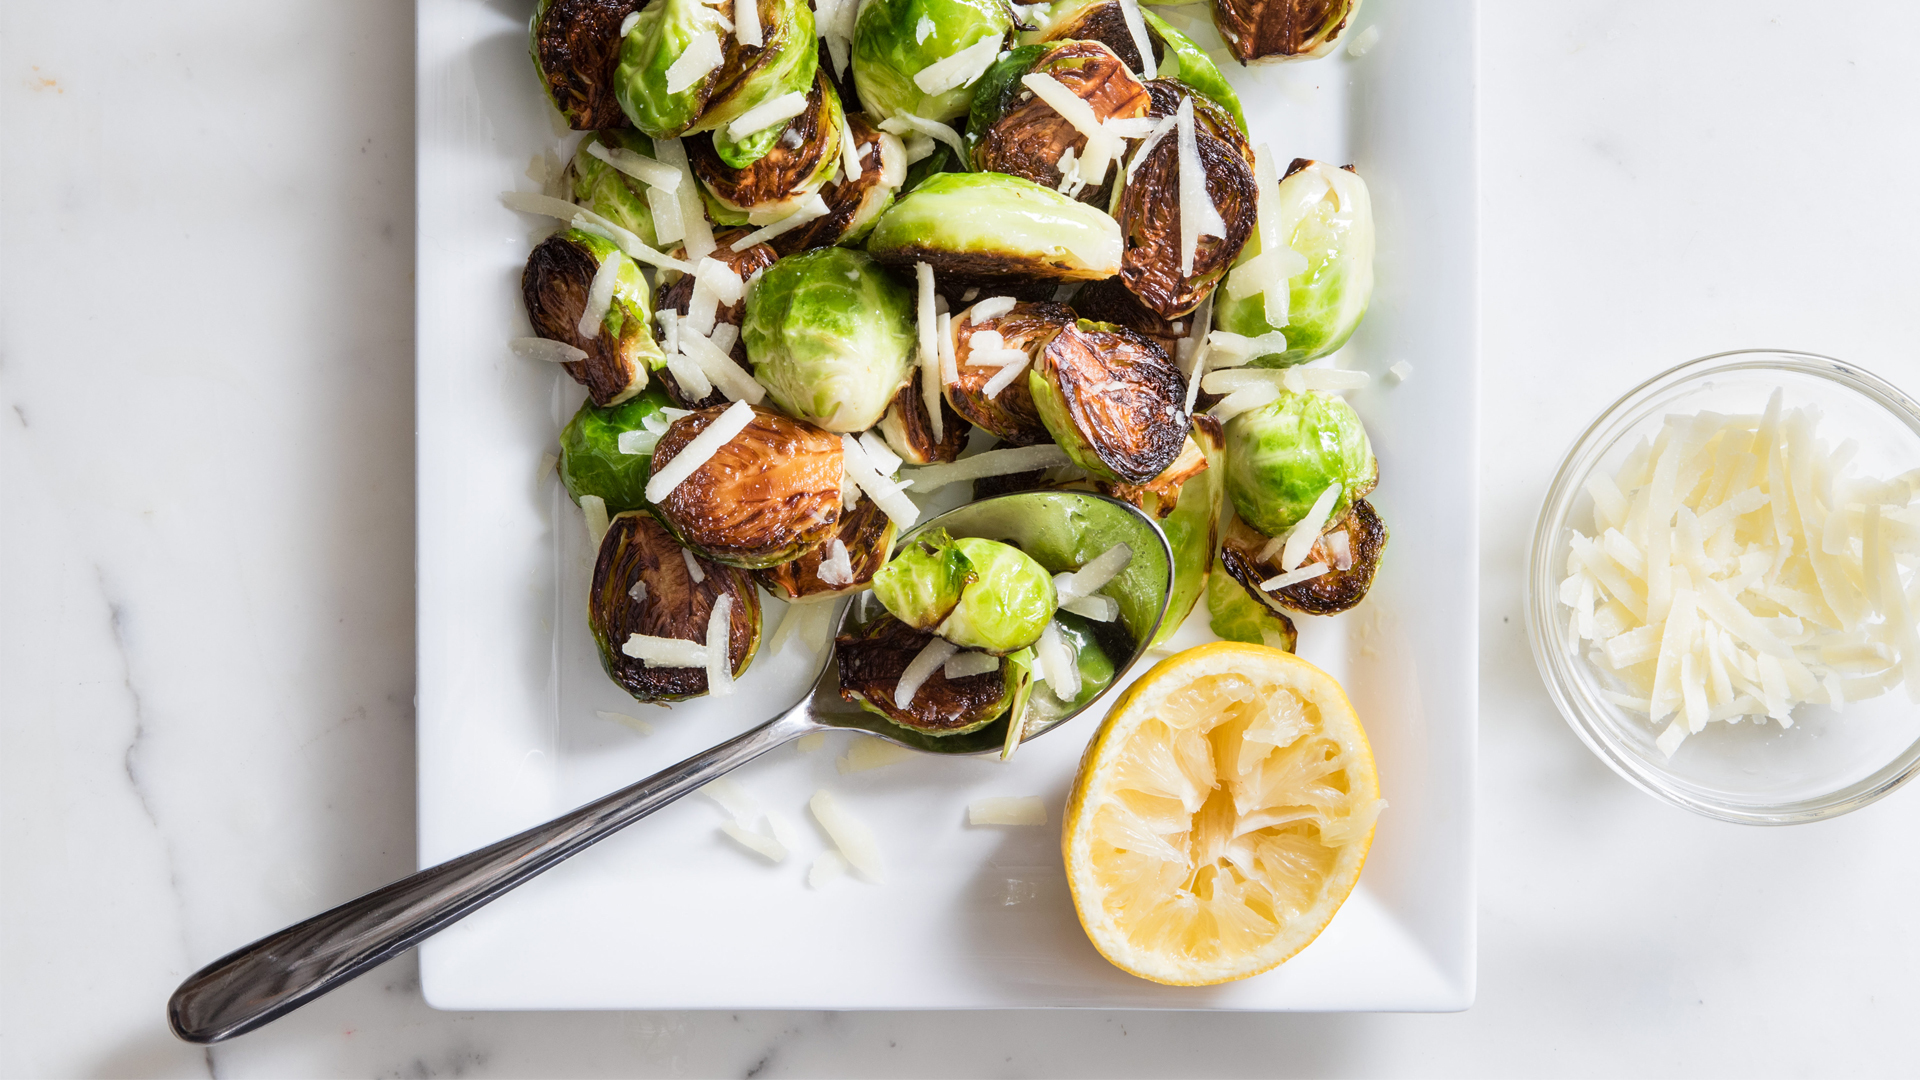 Family fun magazine brussel sprout recipe can not